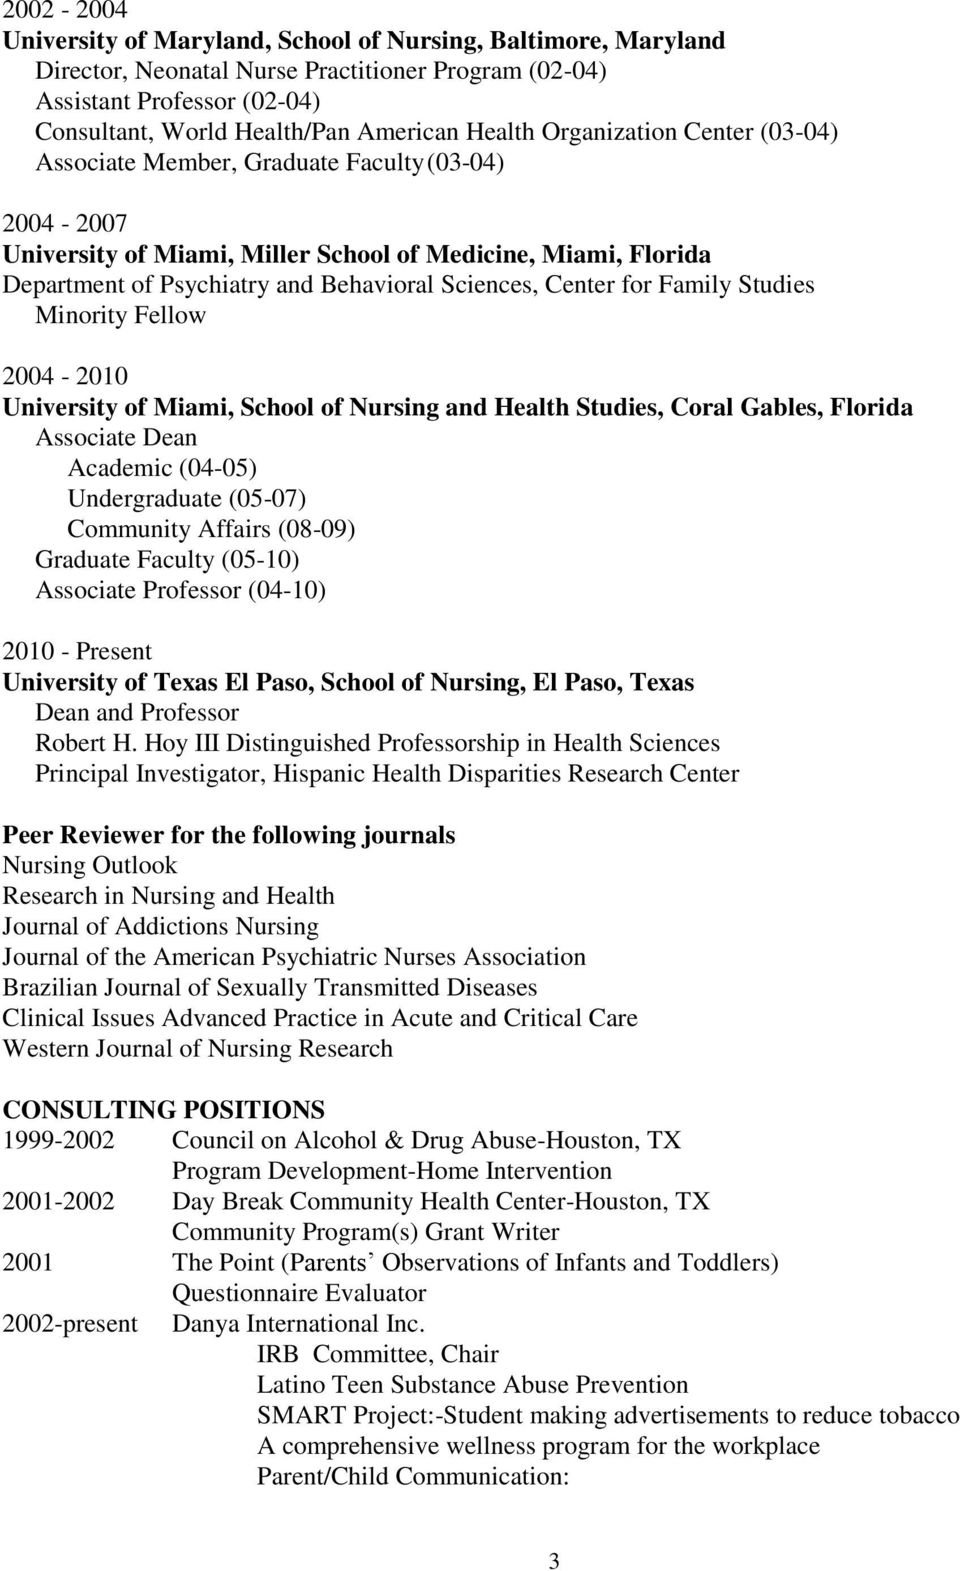 Center for Family Studies Minority Fellow 2004-2010 University of Miami, School of Nursing and Health Studies, Coral Gables, Florida Associate Dean Academic (04-05) Undergraduate (05-07) Community